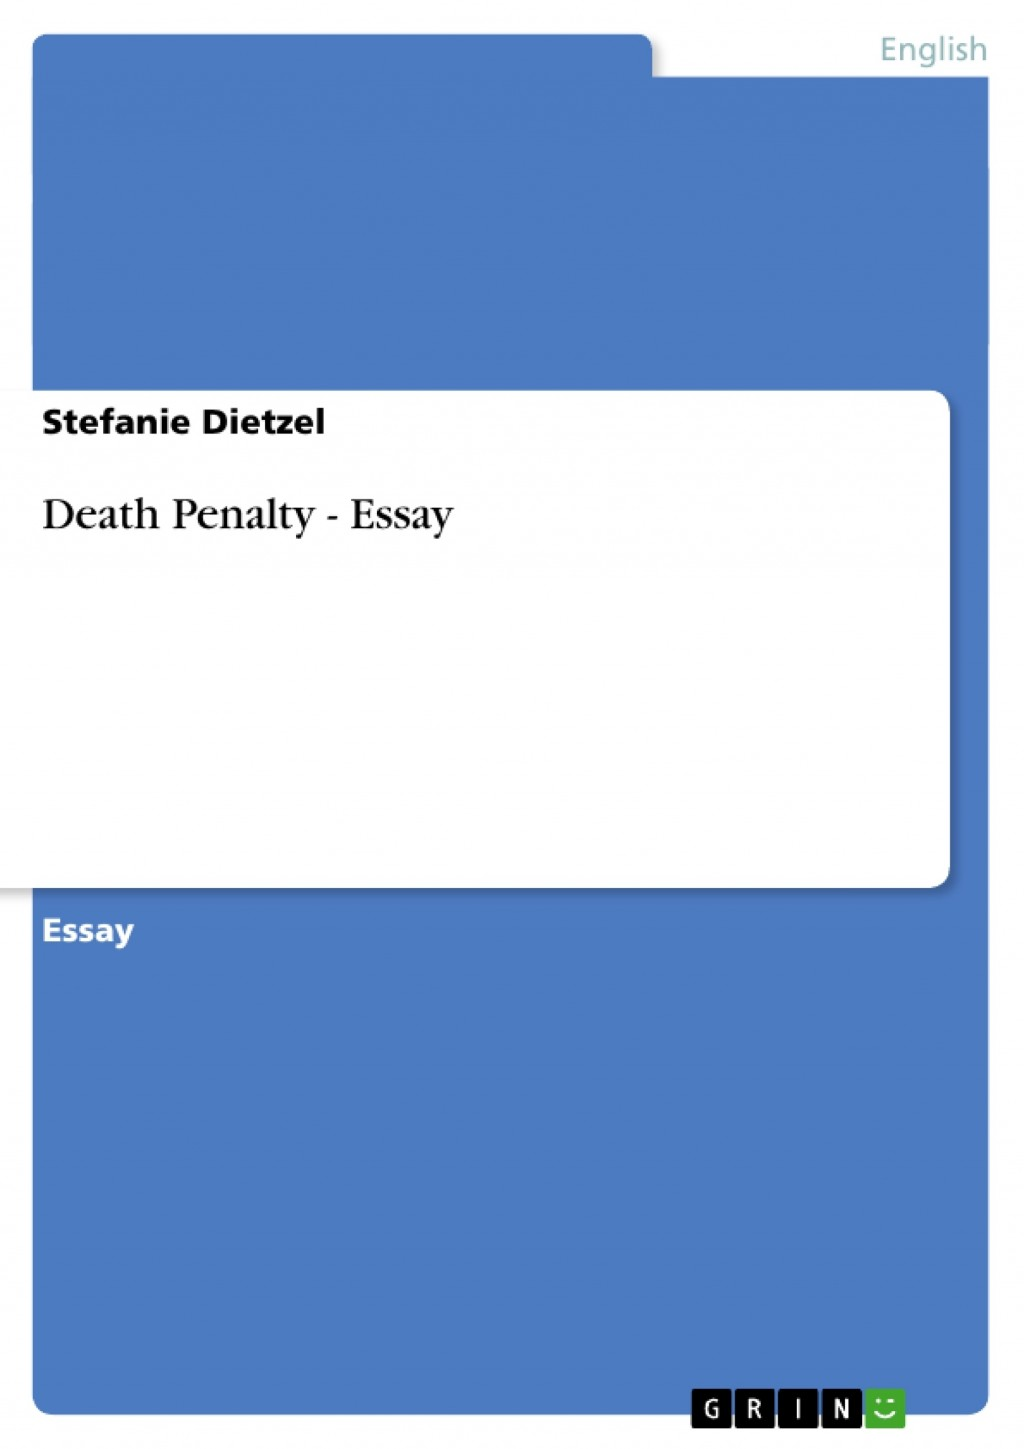 020 133402 0 Essay On Death Penalty Beautiful Should Be Abolished Or Not In Hindi Large